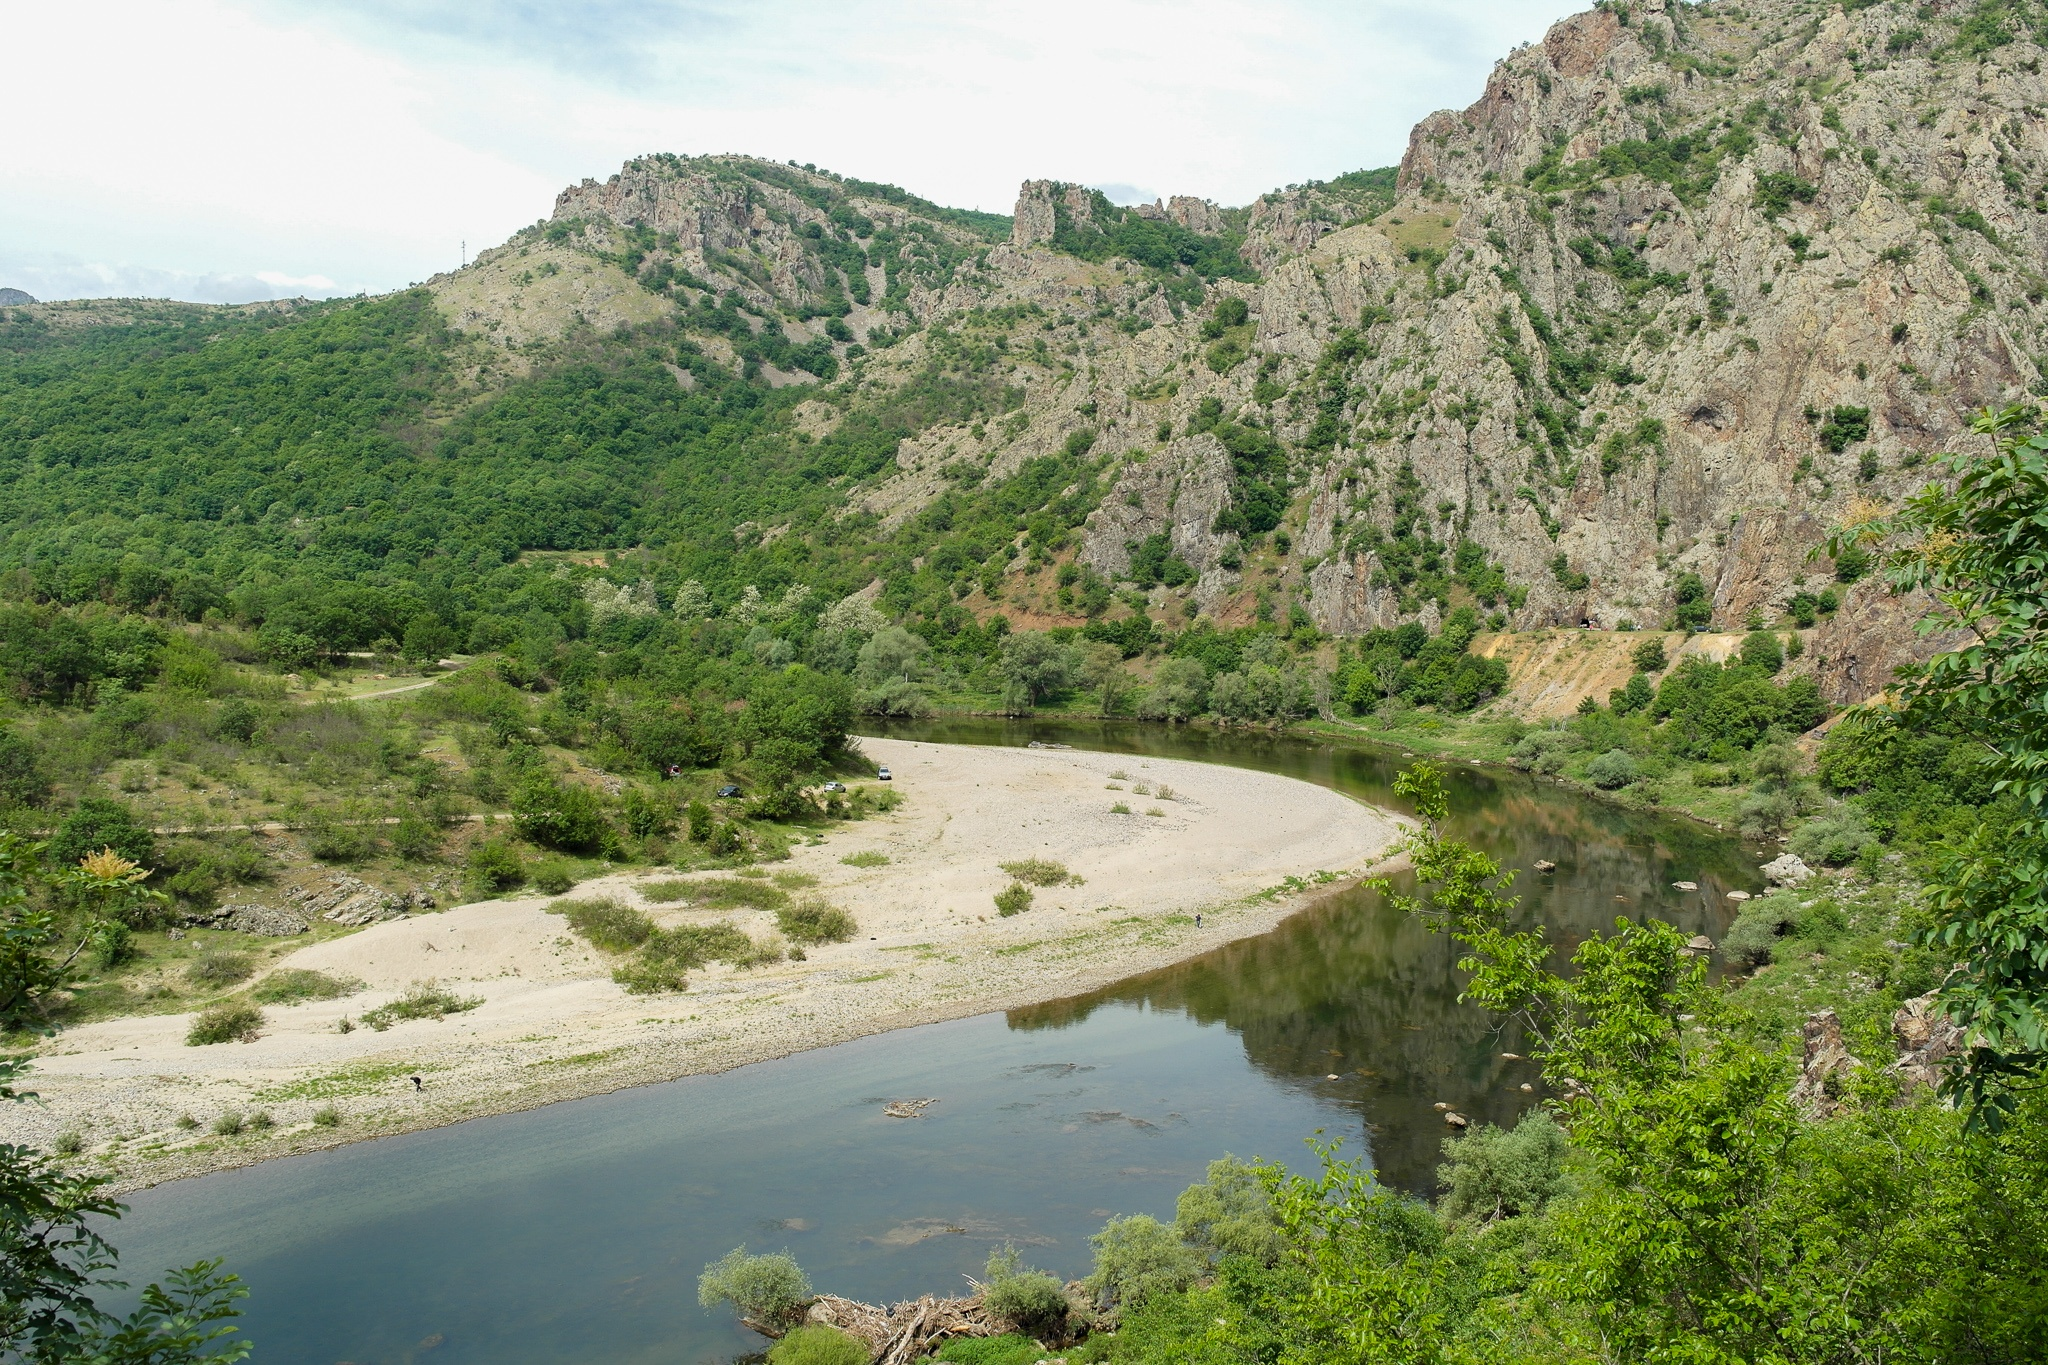 The Meanders of Arda River